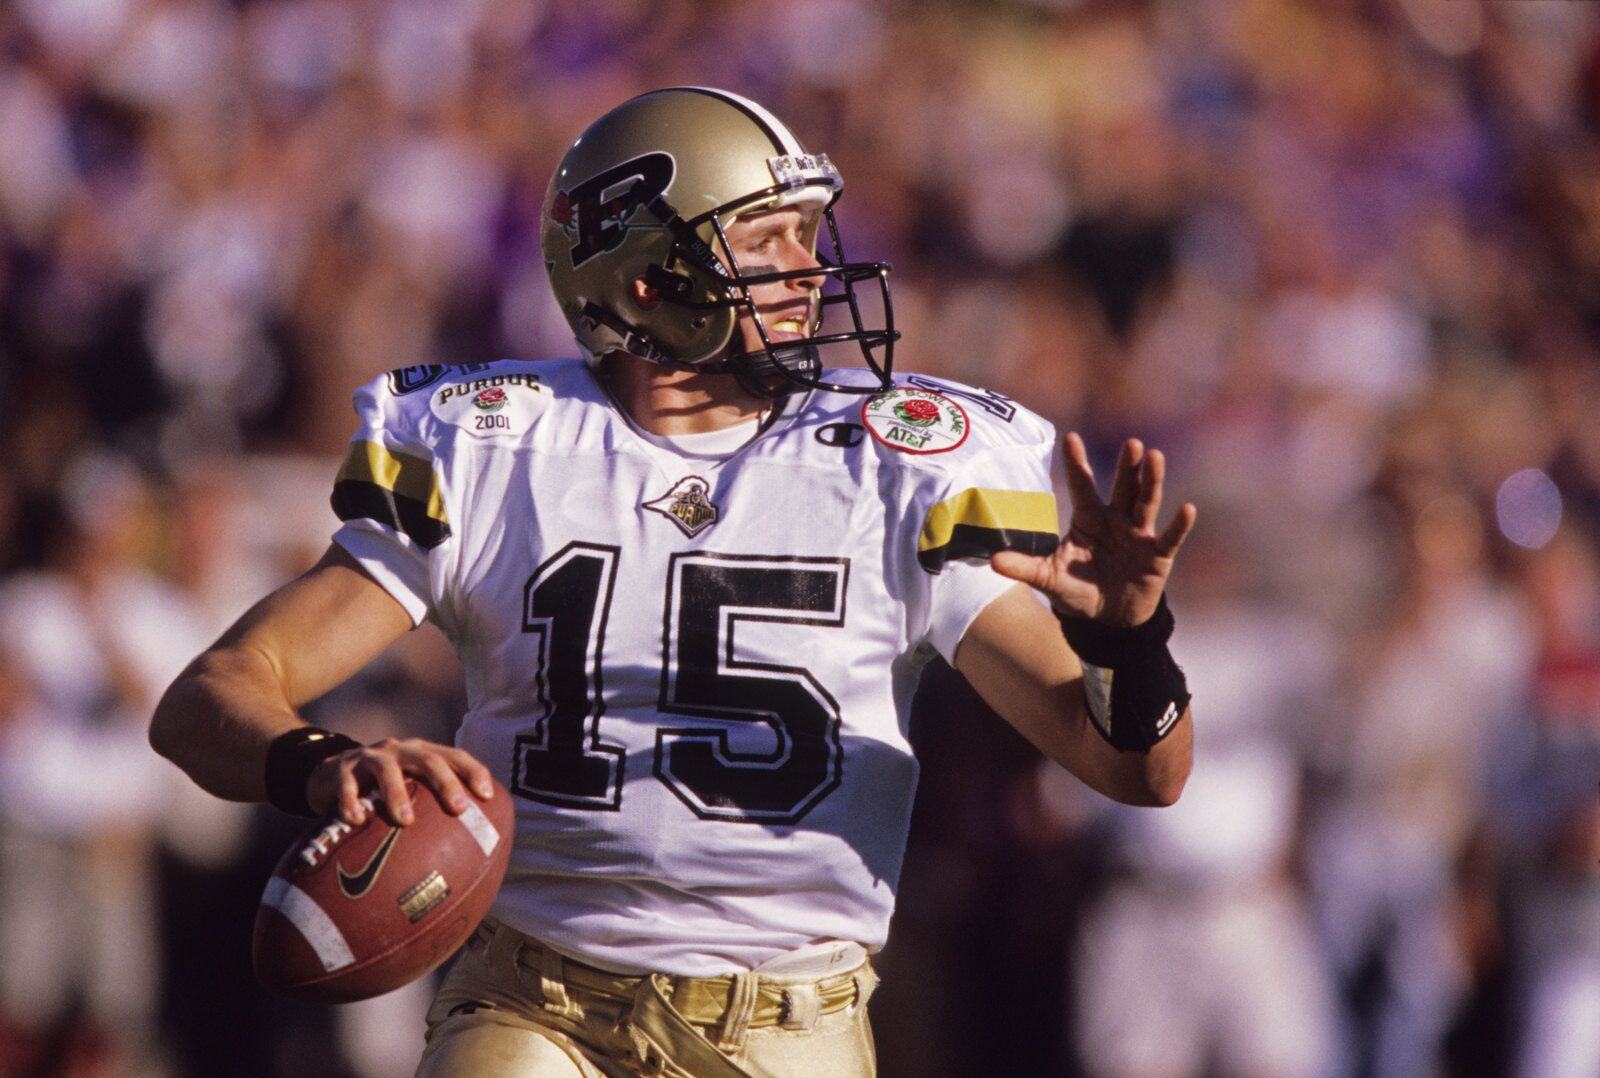 Drew Brees: The one that got away for Texas, Texas A&M